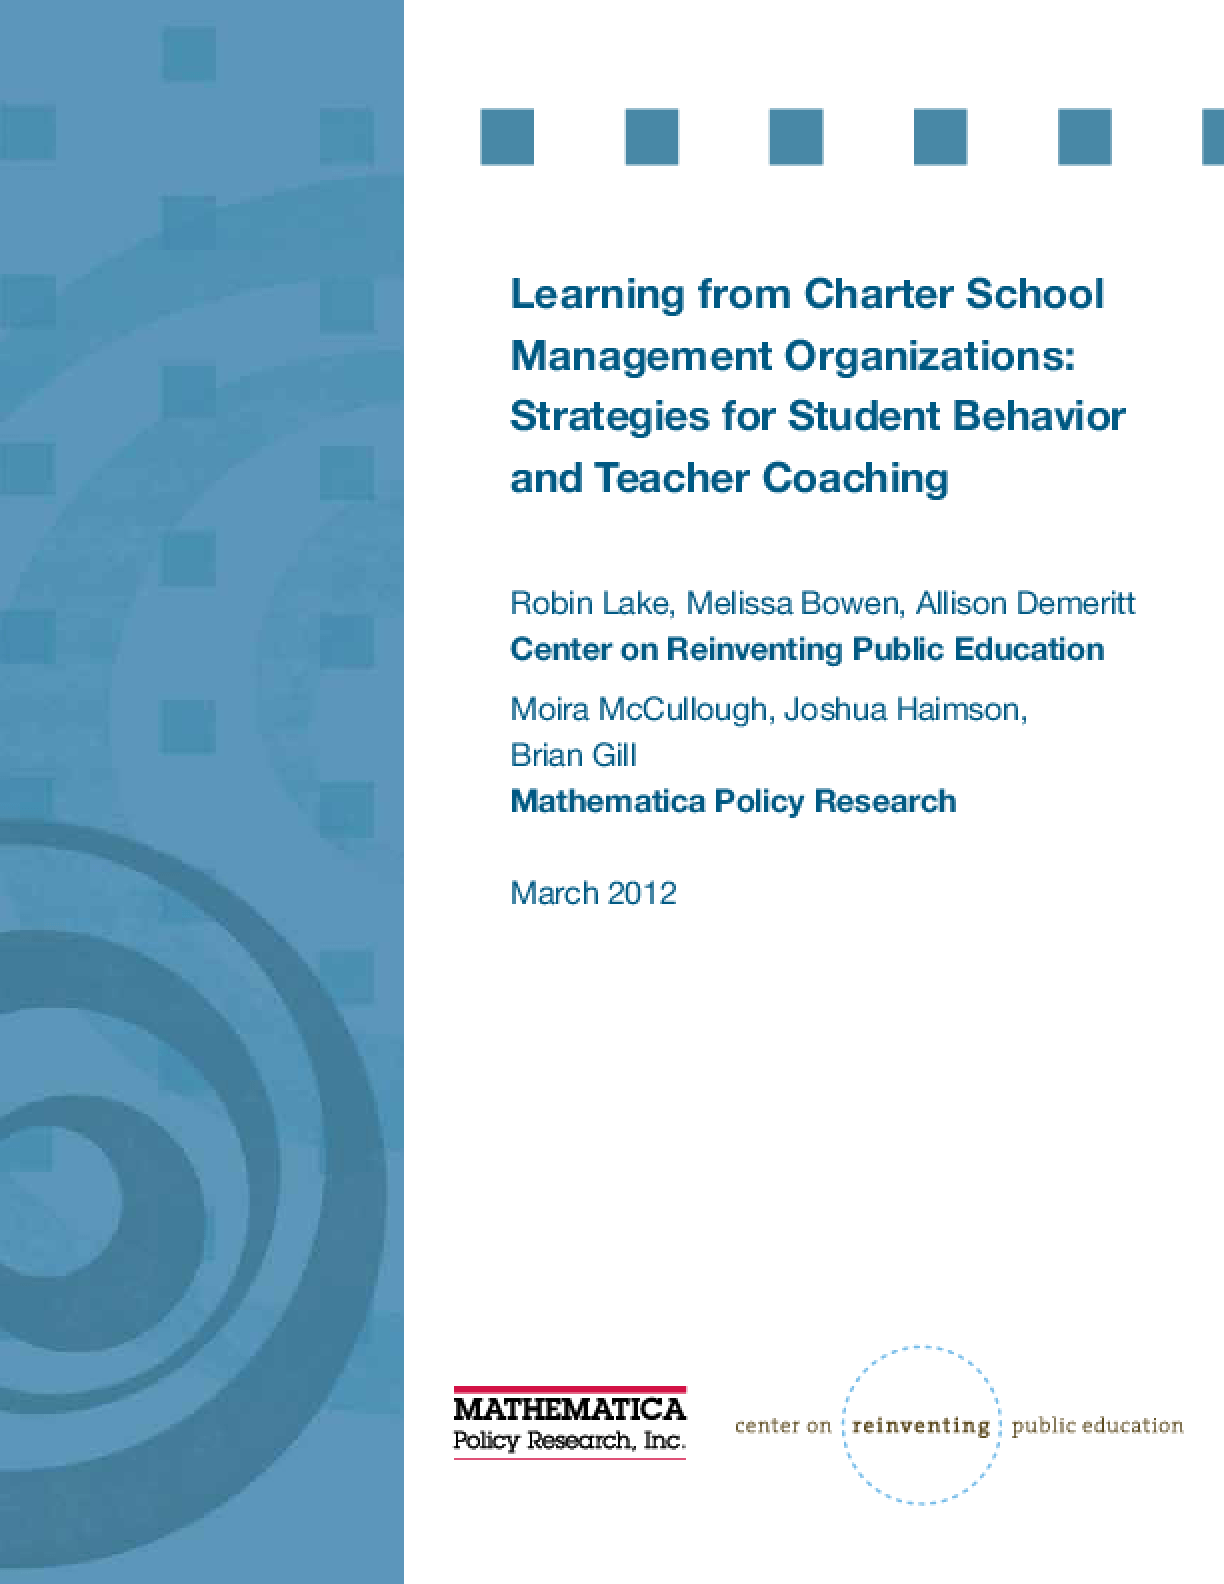 Learning From Charter School Management Organizations: Strategies for Student Behavior and Teacher Coaching